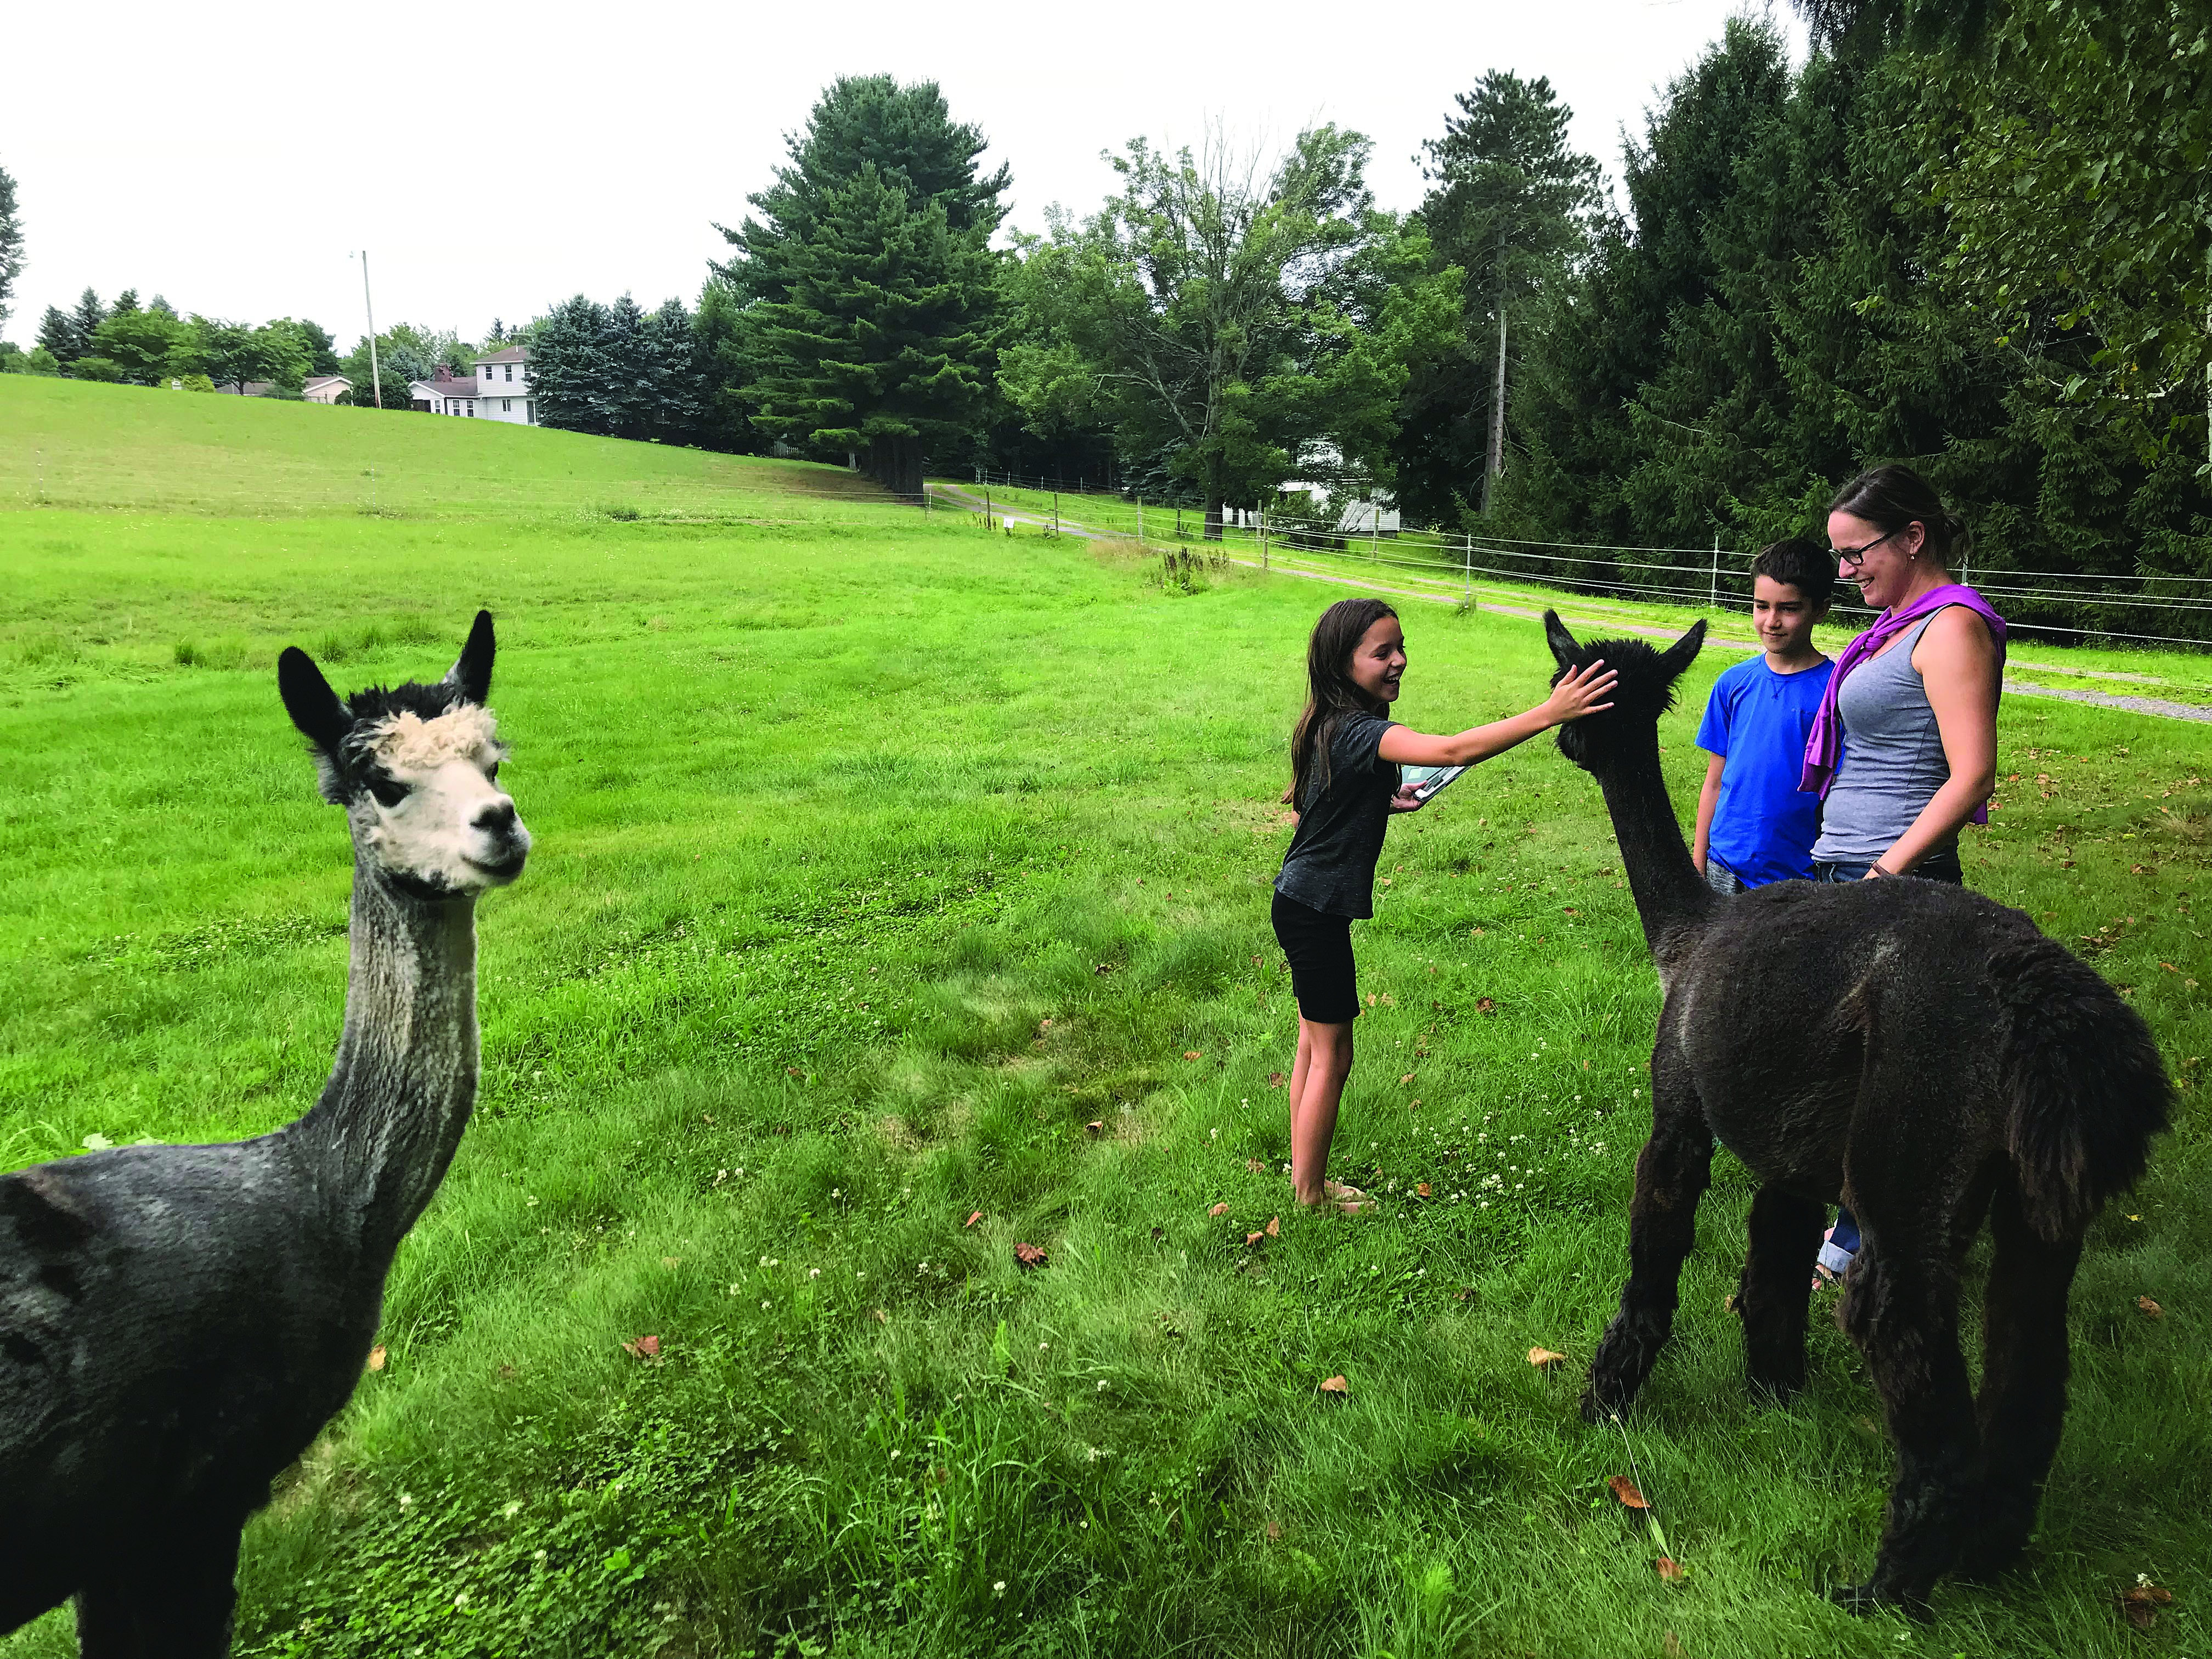 A FAMILY AFFAIR: A family feeds and pets some of the alpacas at LaCroix Alpaca in Oliveburg, Pa. The business is owned by United EC members Patti and George LaCroix.